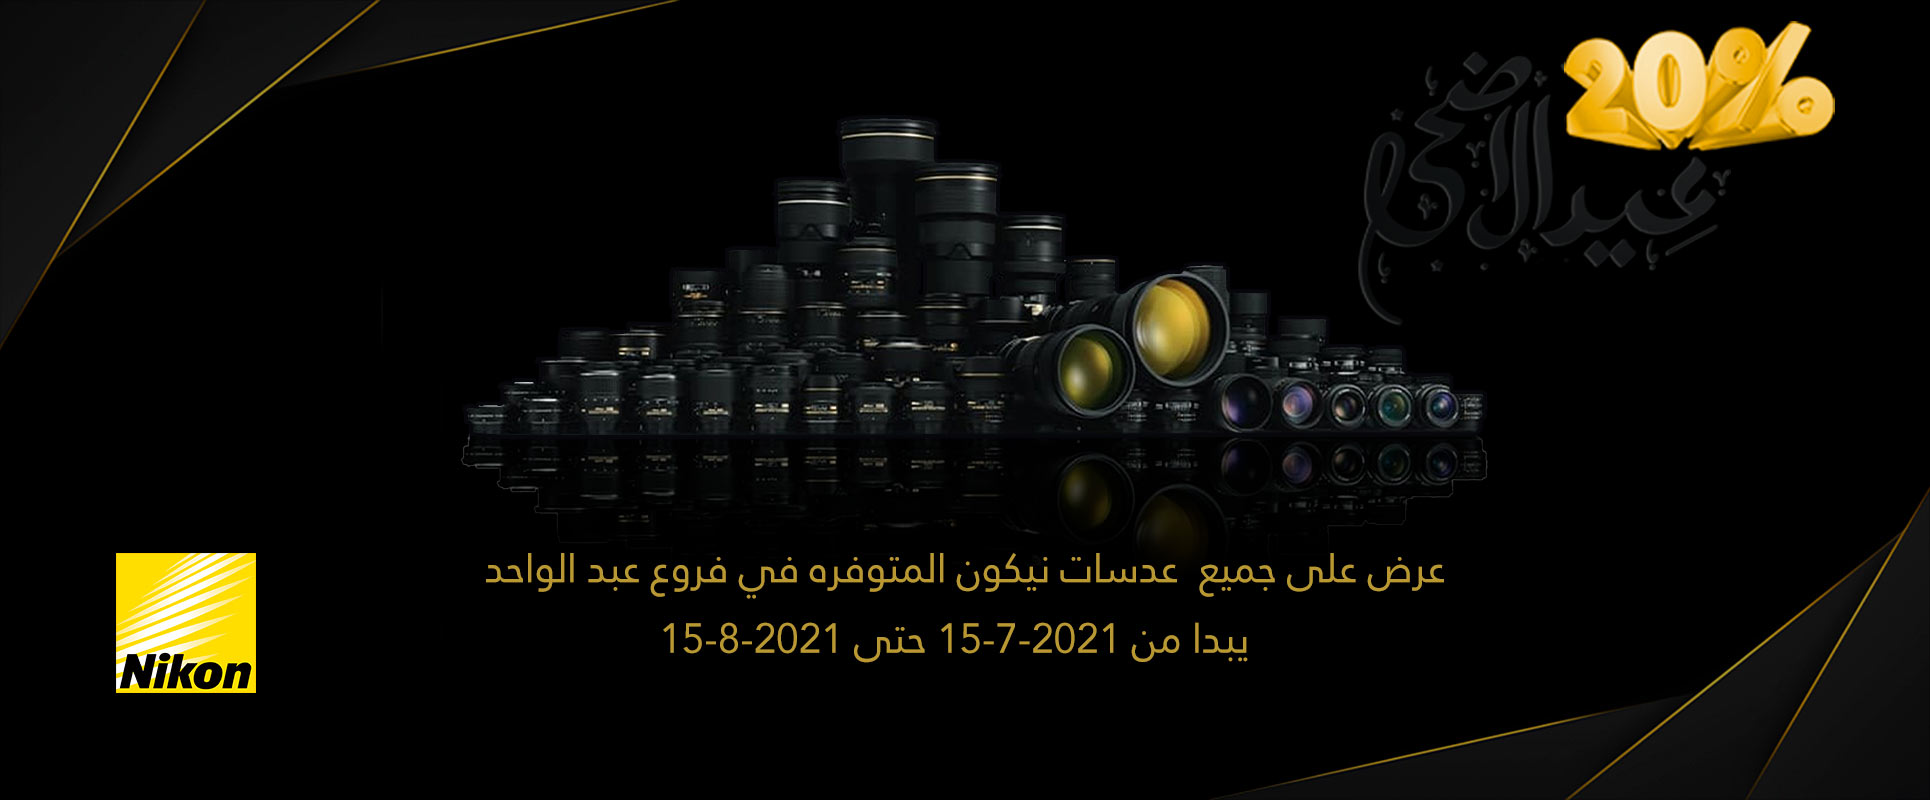 20% discount on nikon offers